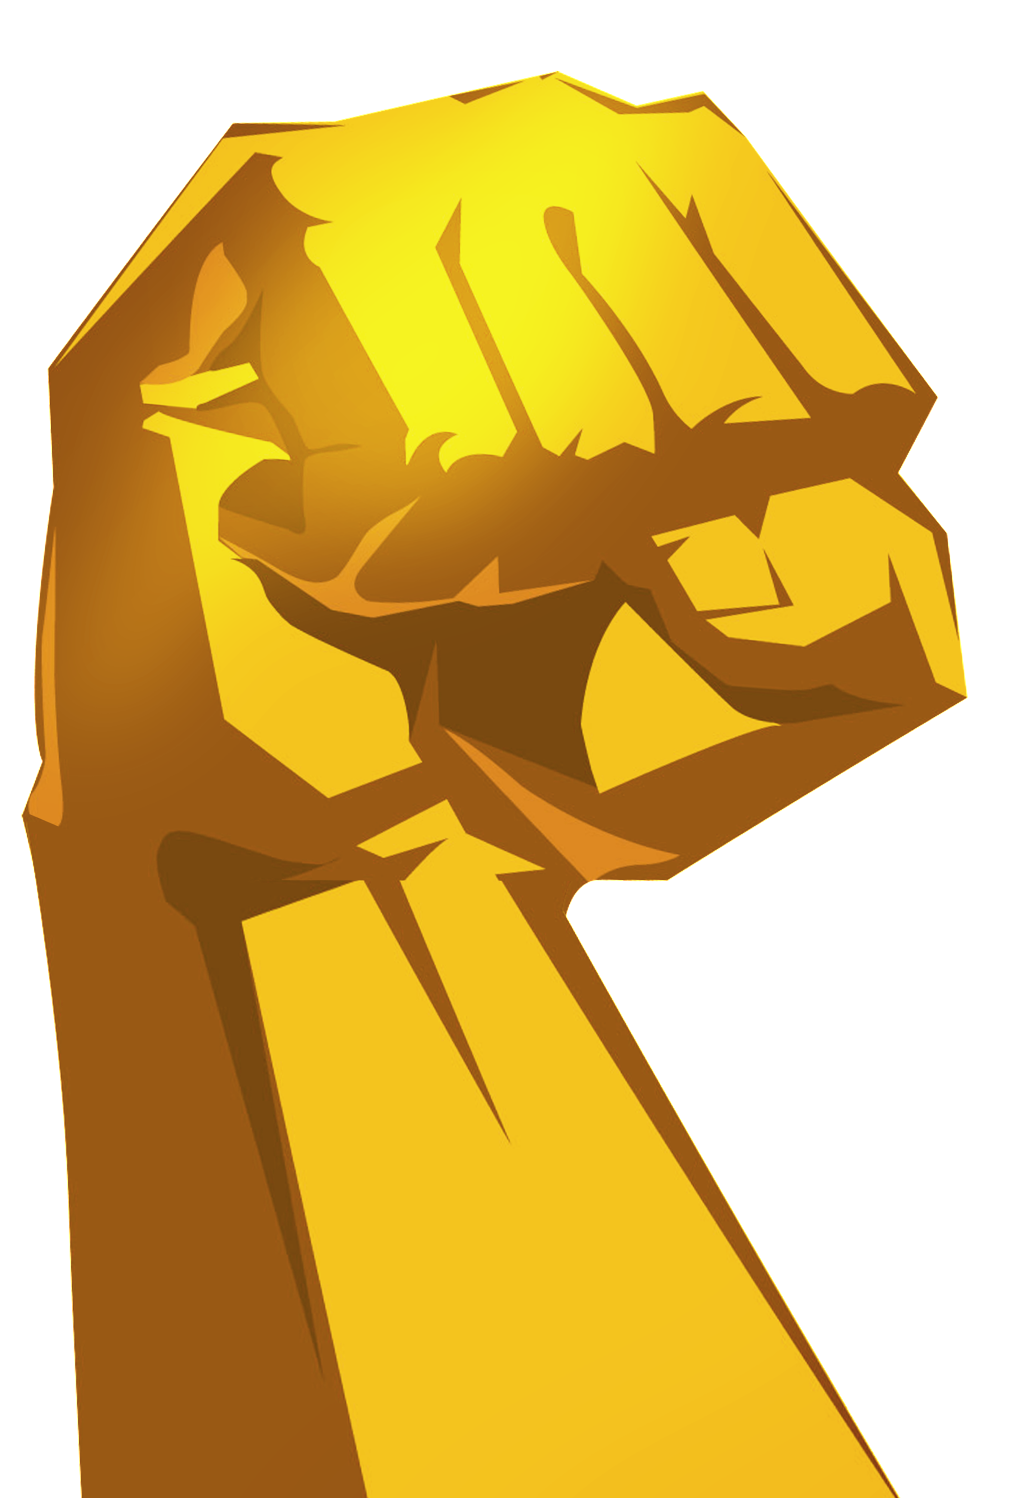 Fist clipart strength. Power free download png